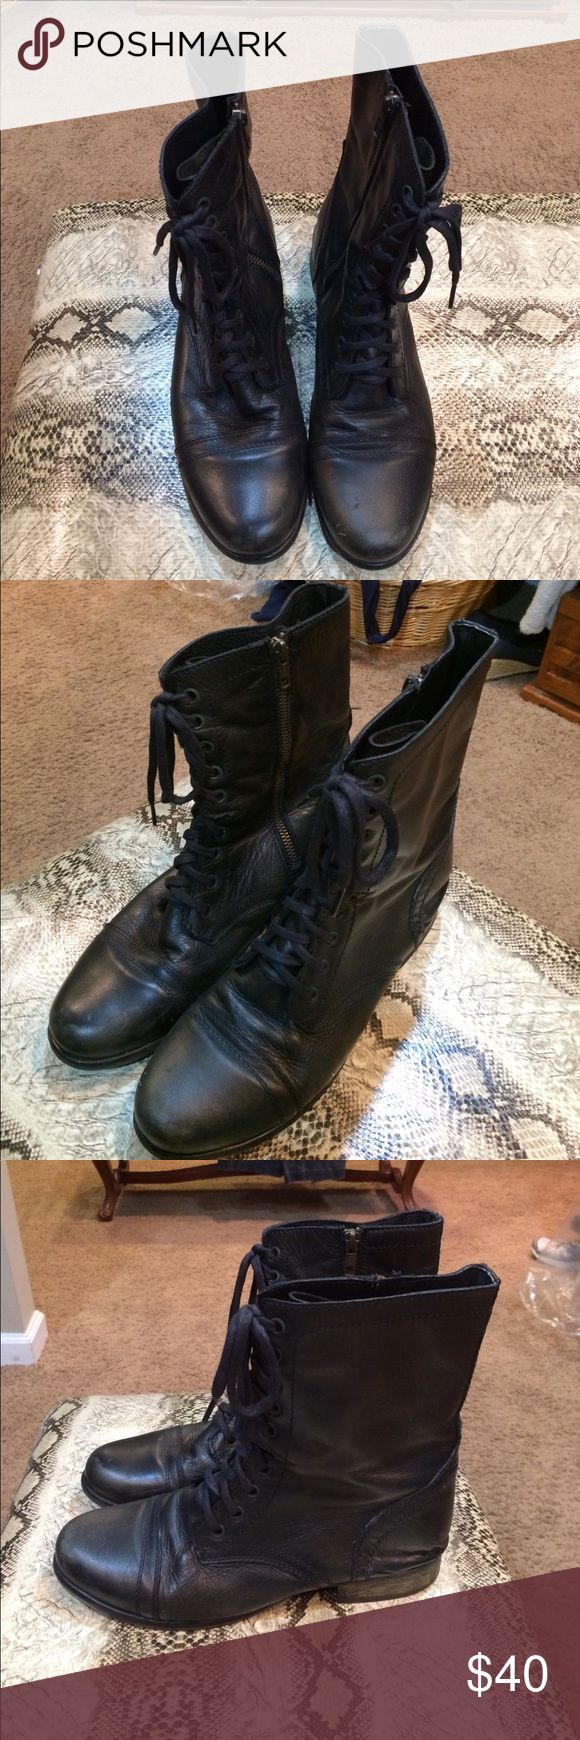 Steve Madden Troopa Black Boots Black leather distressed style boot with lace up front and zipper side. True to size. Comfortable and lightly worn. Steve Madden Shoes Lace Up Boots